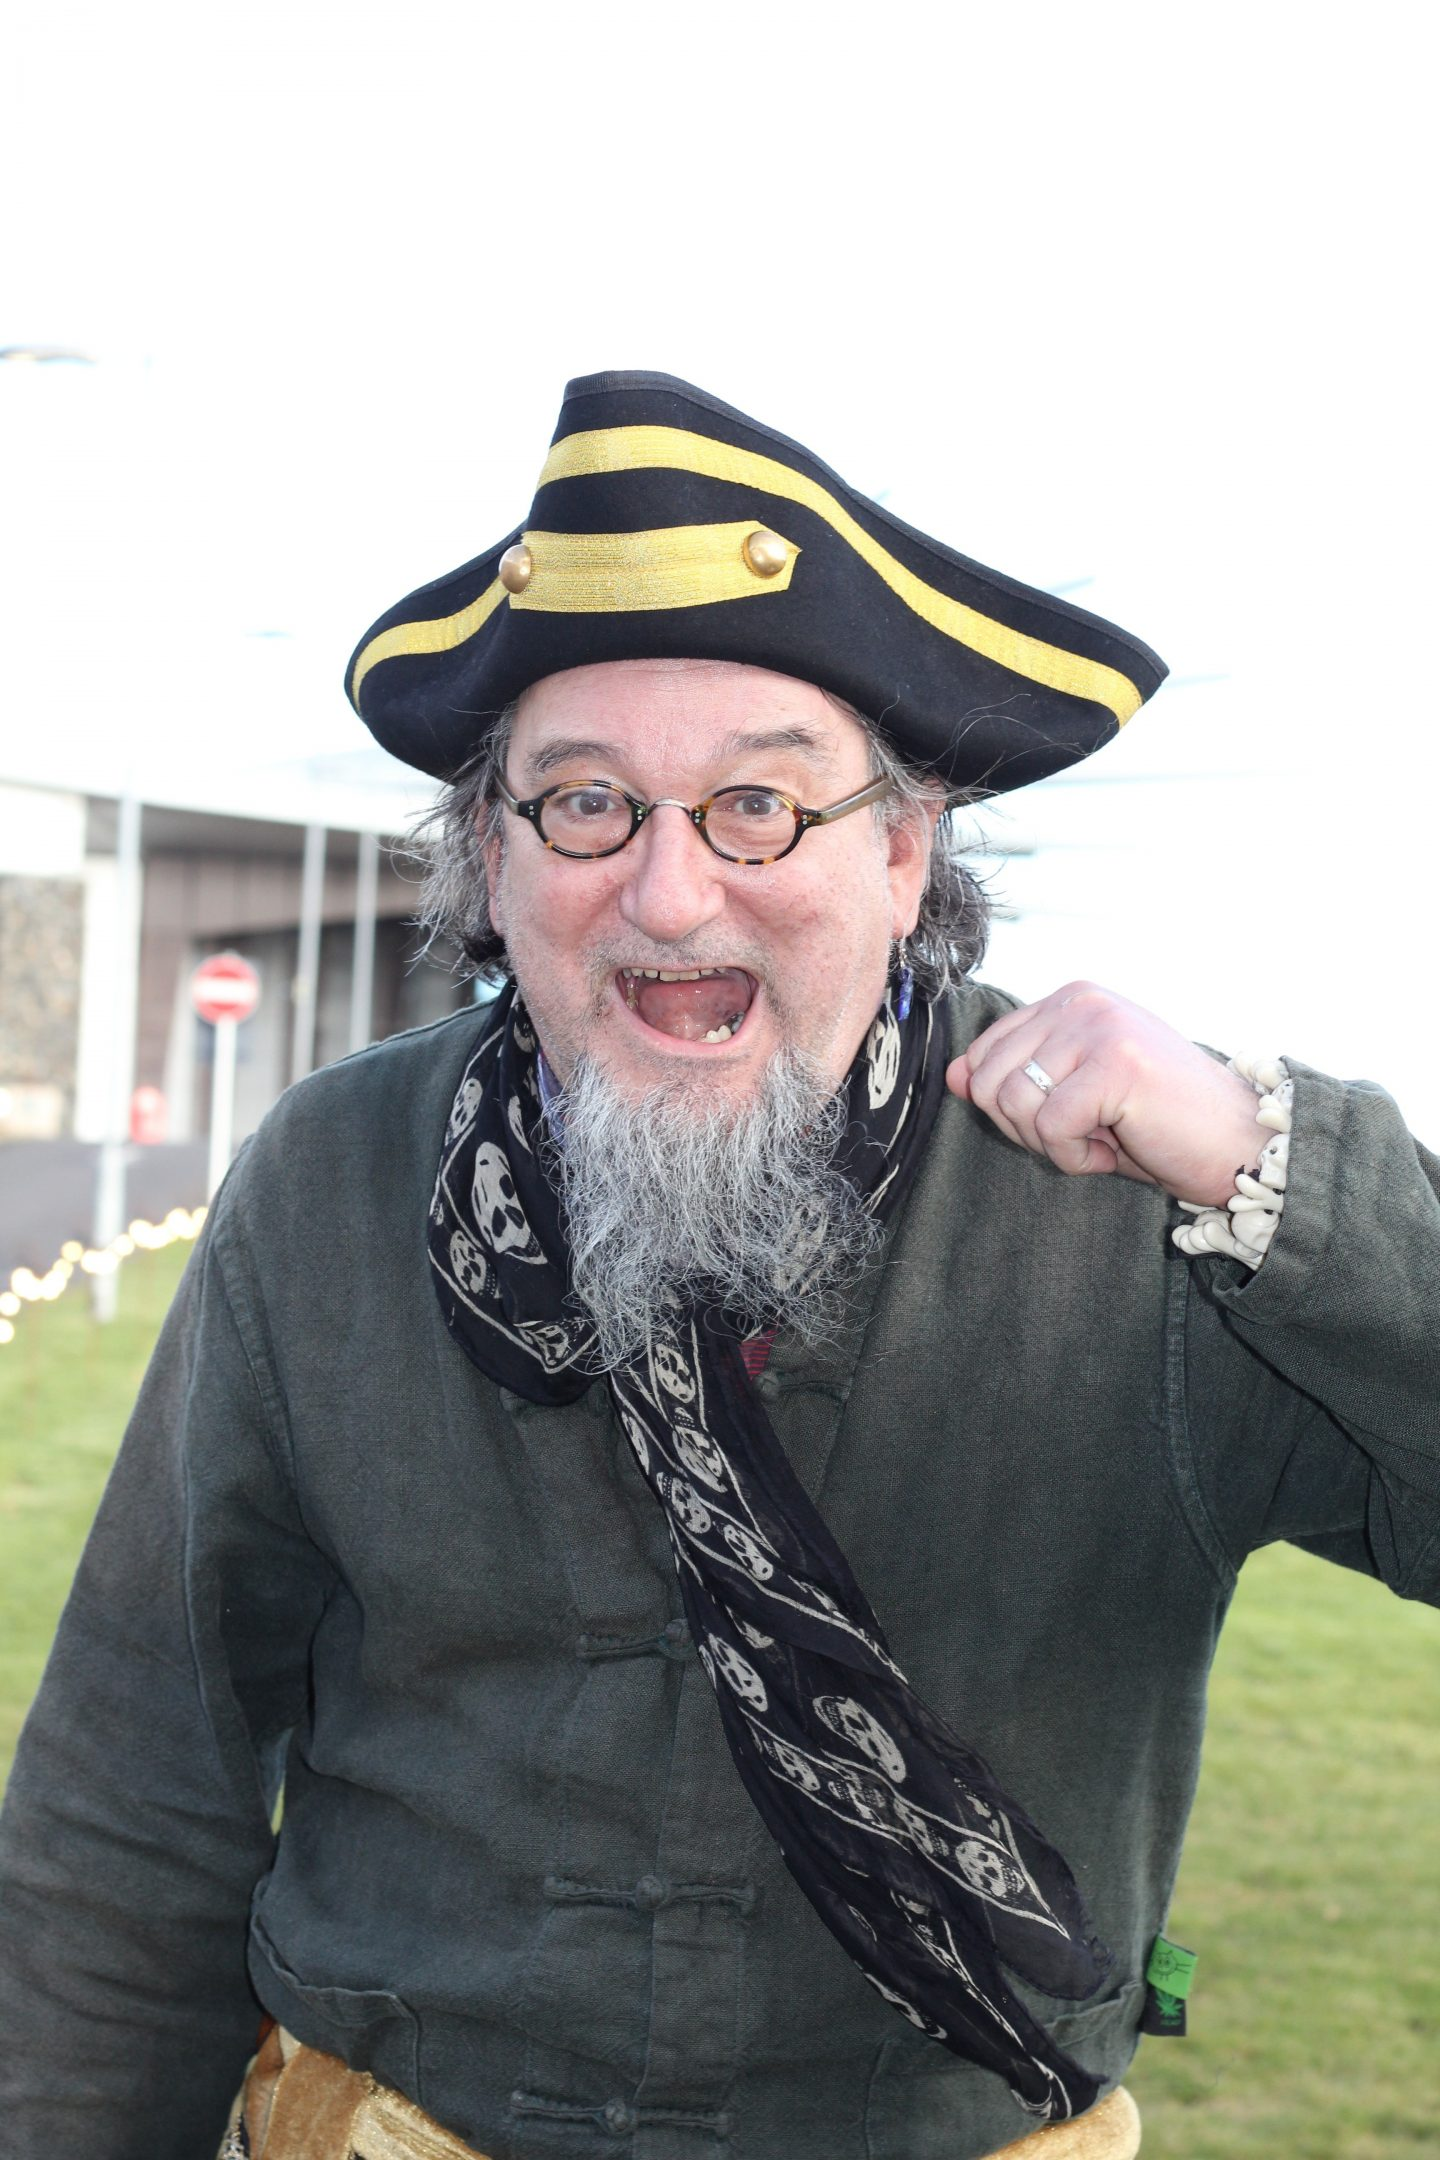 Pirates at Woodhorn this February Half Term!